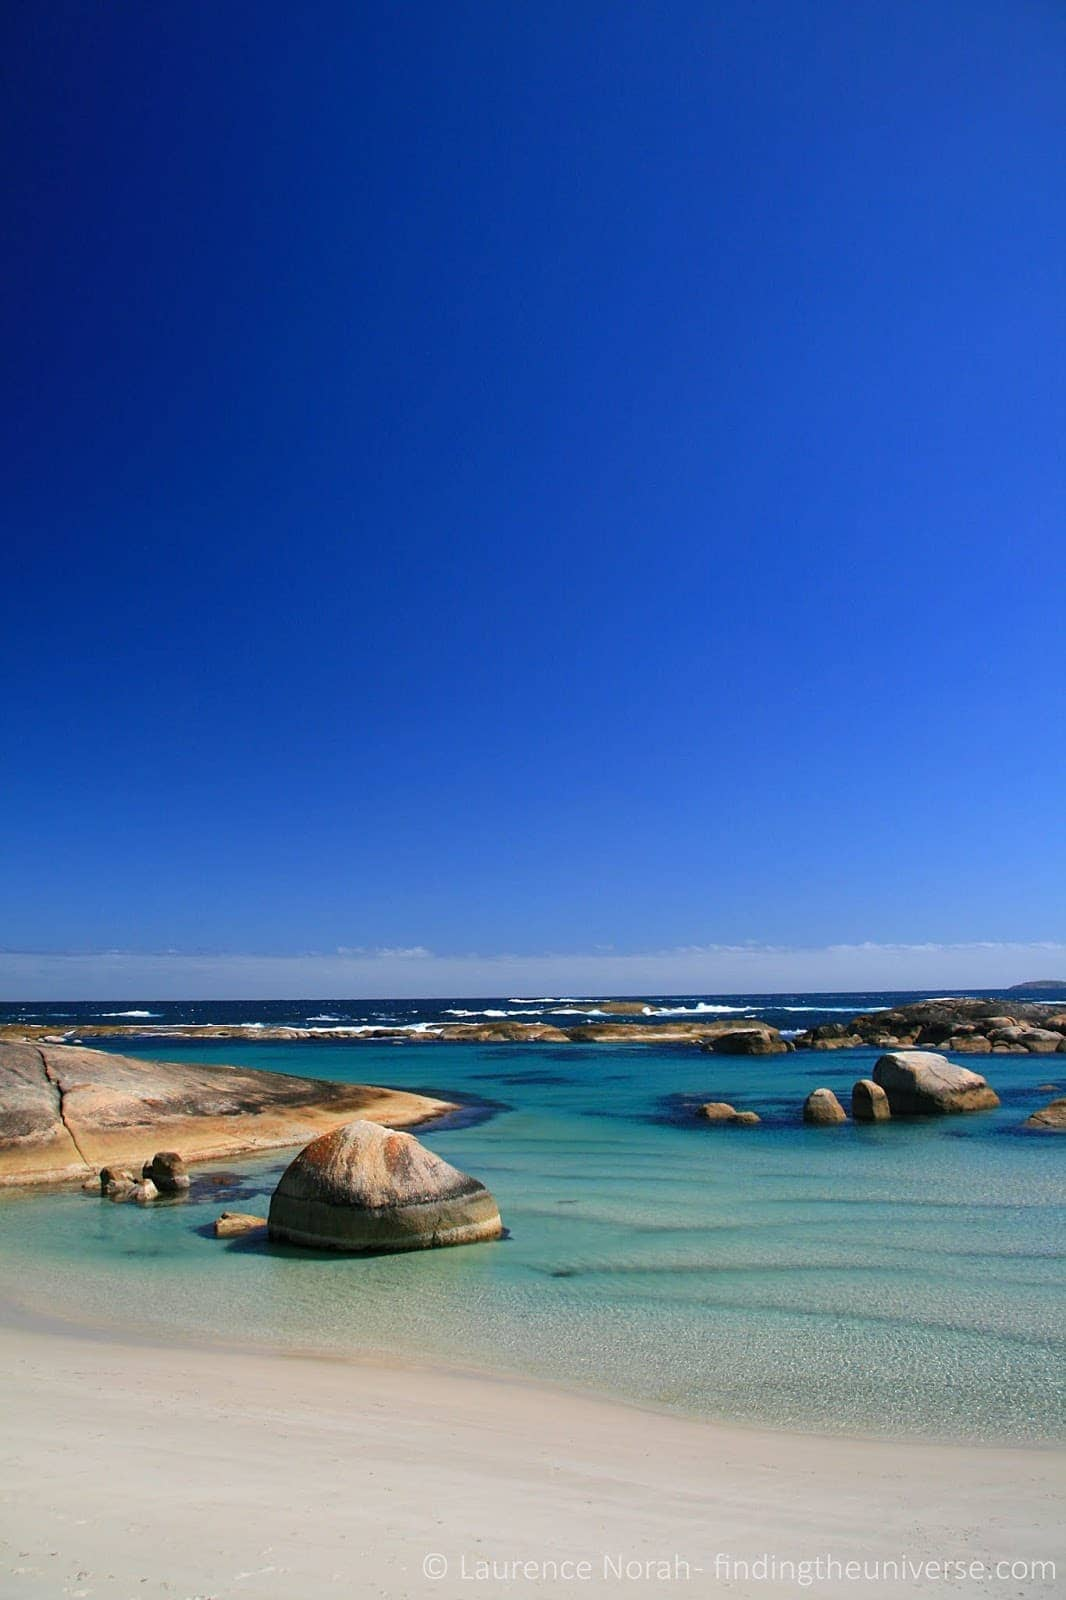 Elephant rocks beach australia